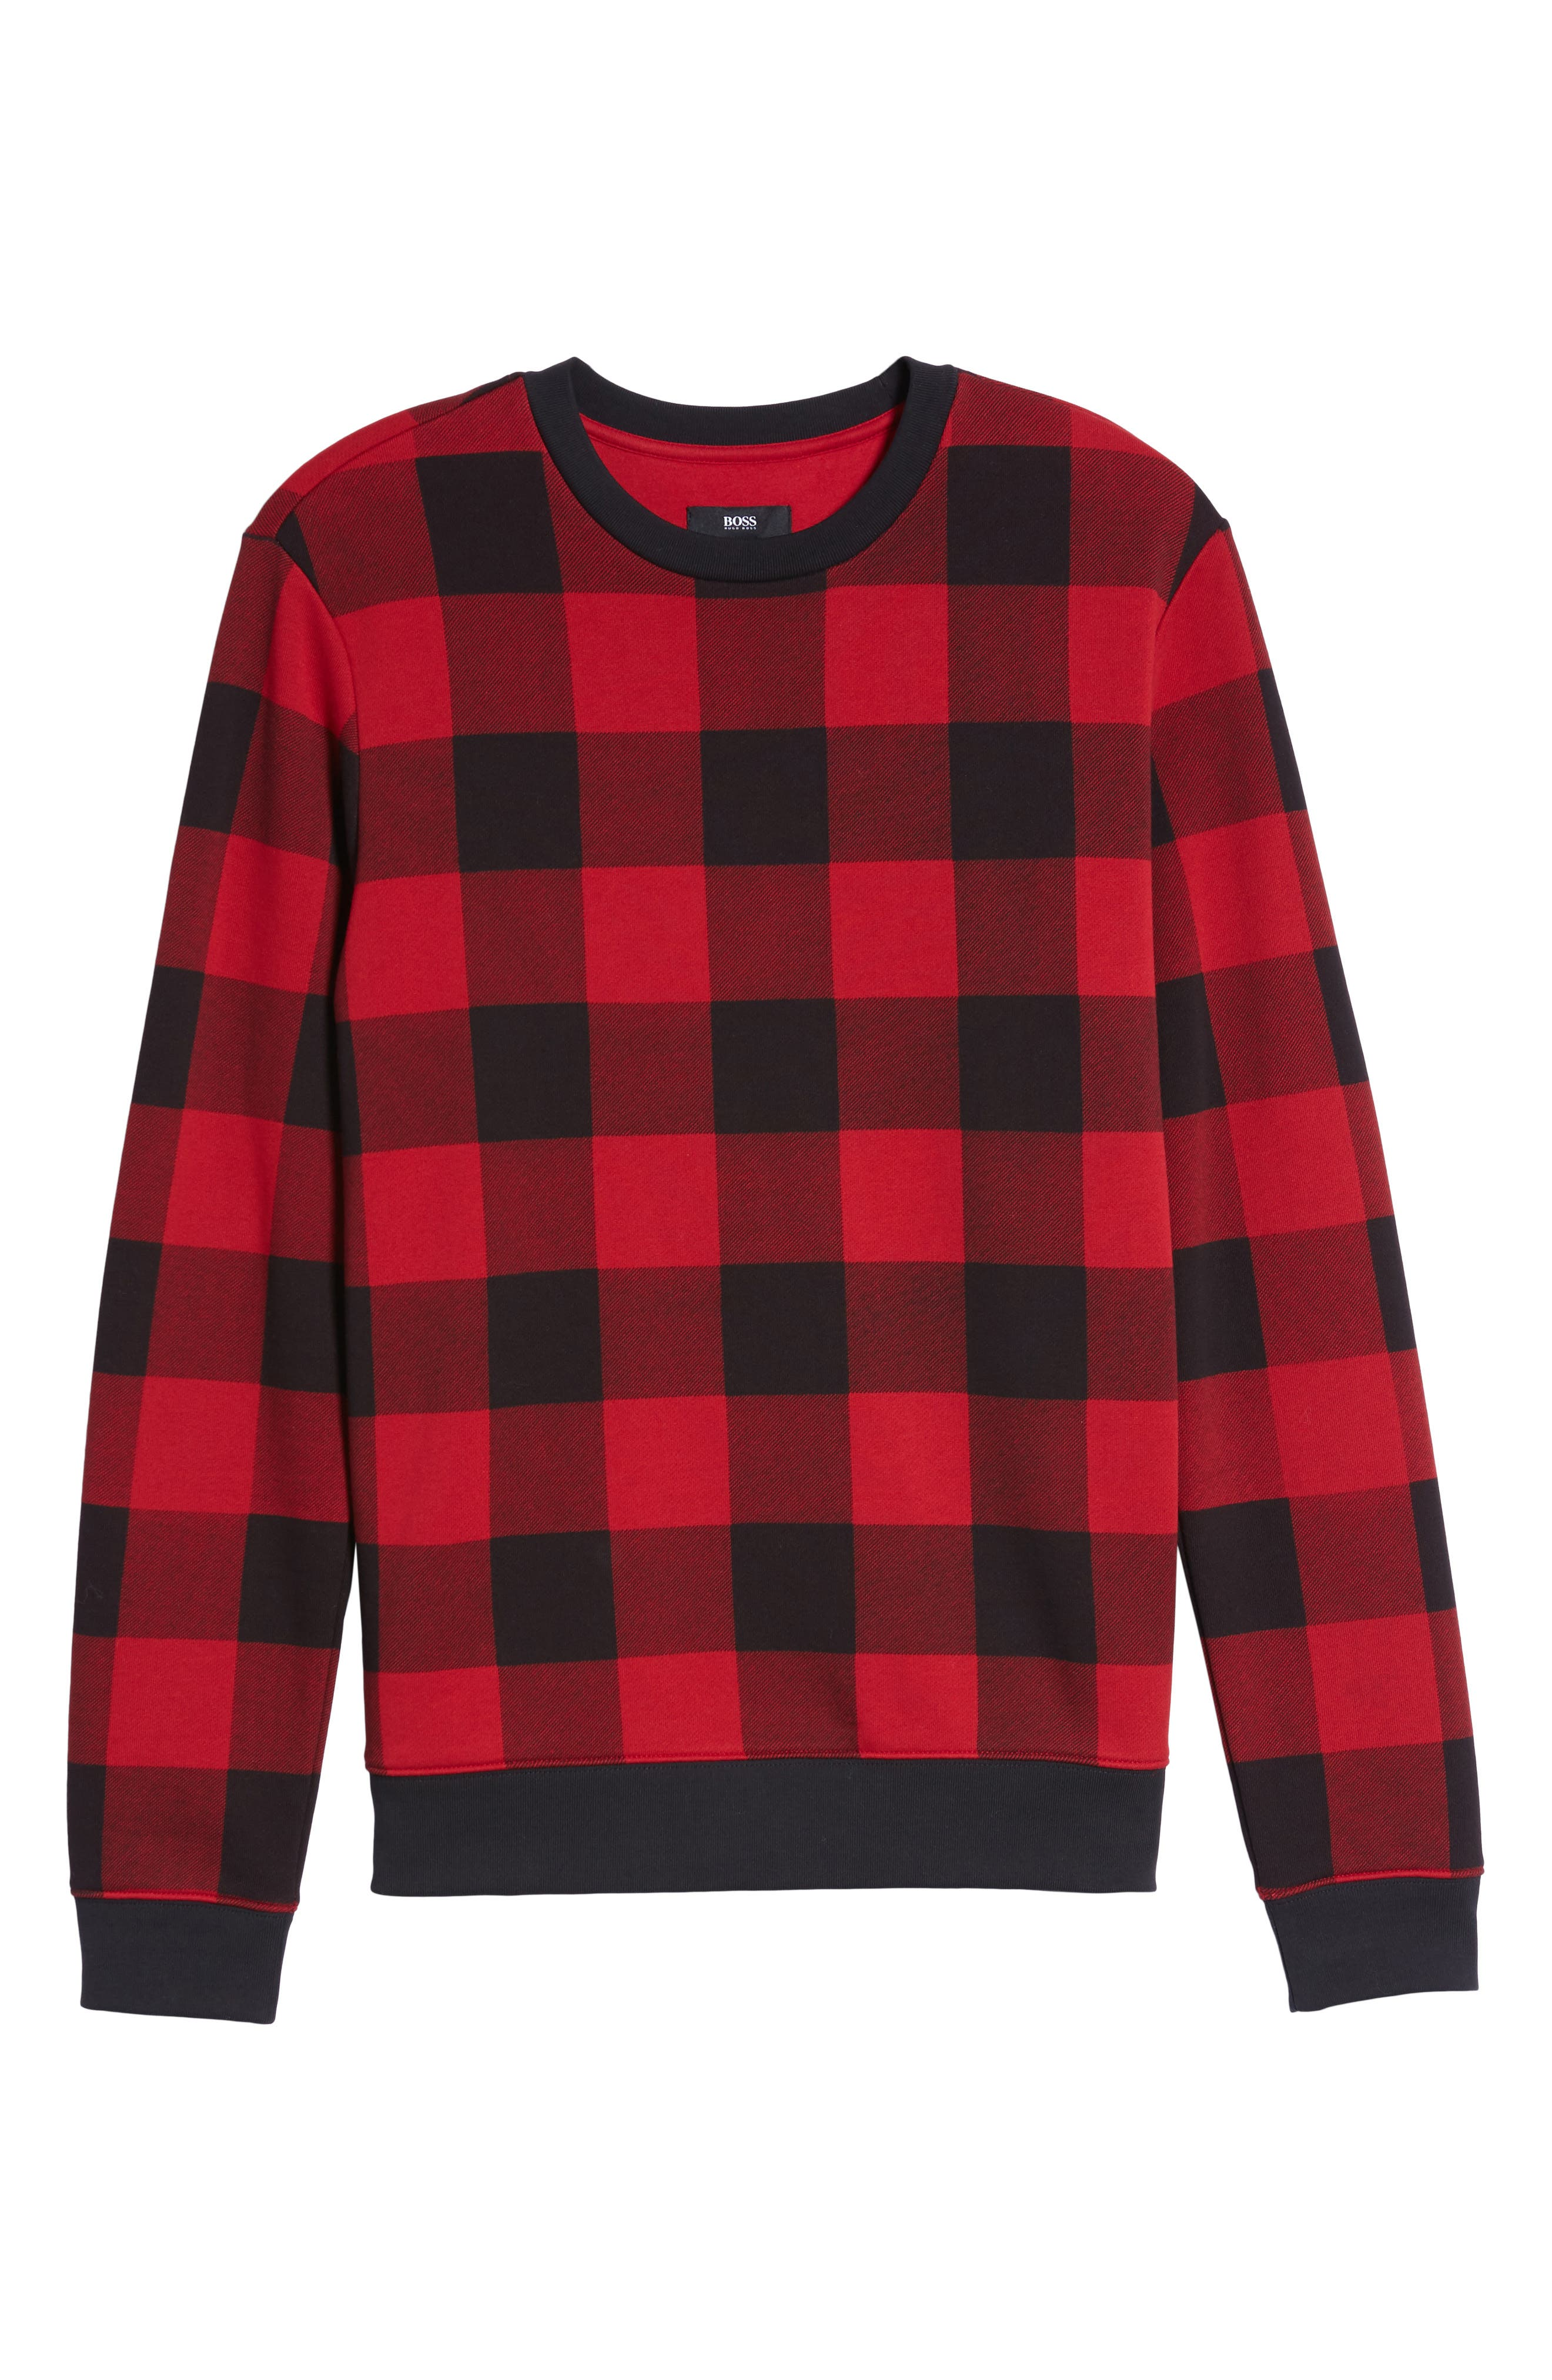 Skubic Check Slim Fit Sweater,                             Alternate thumbnail 6, color,                             629